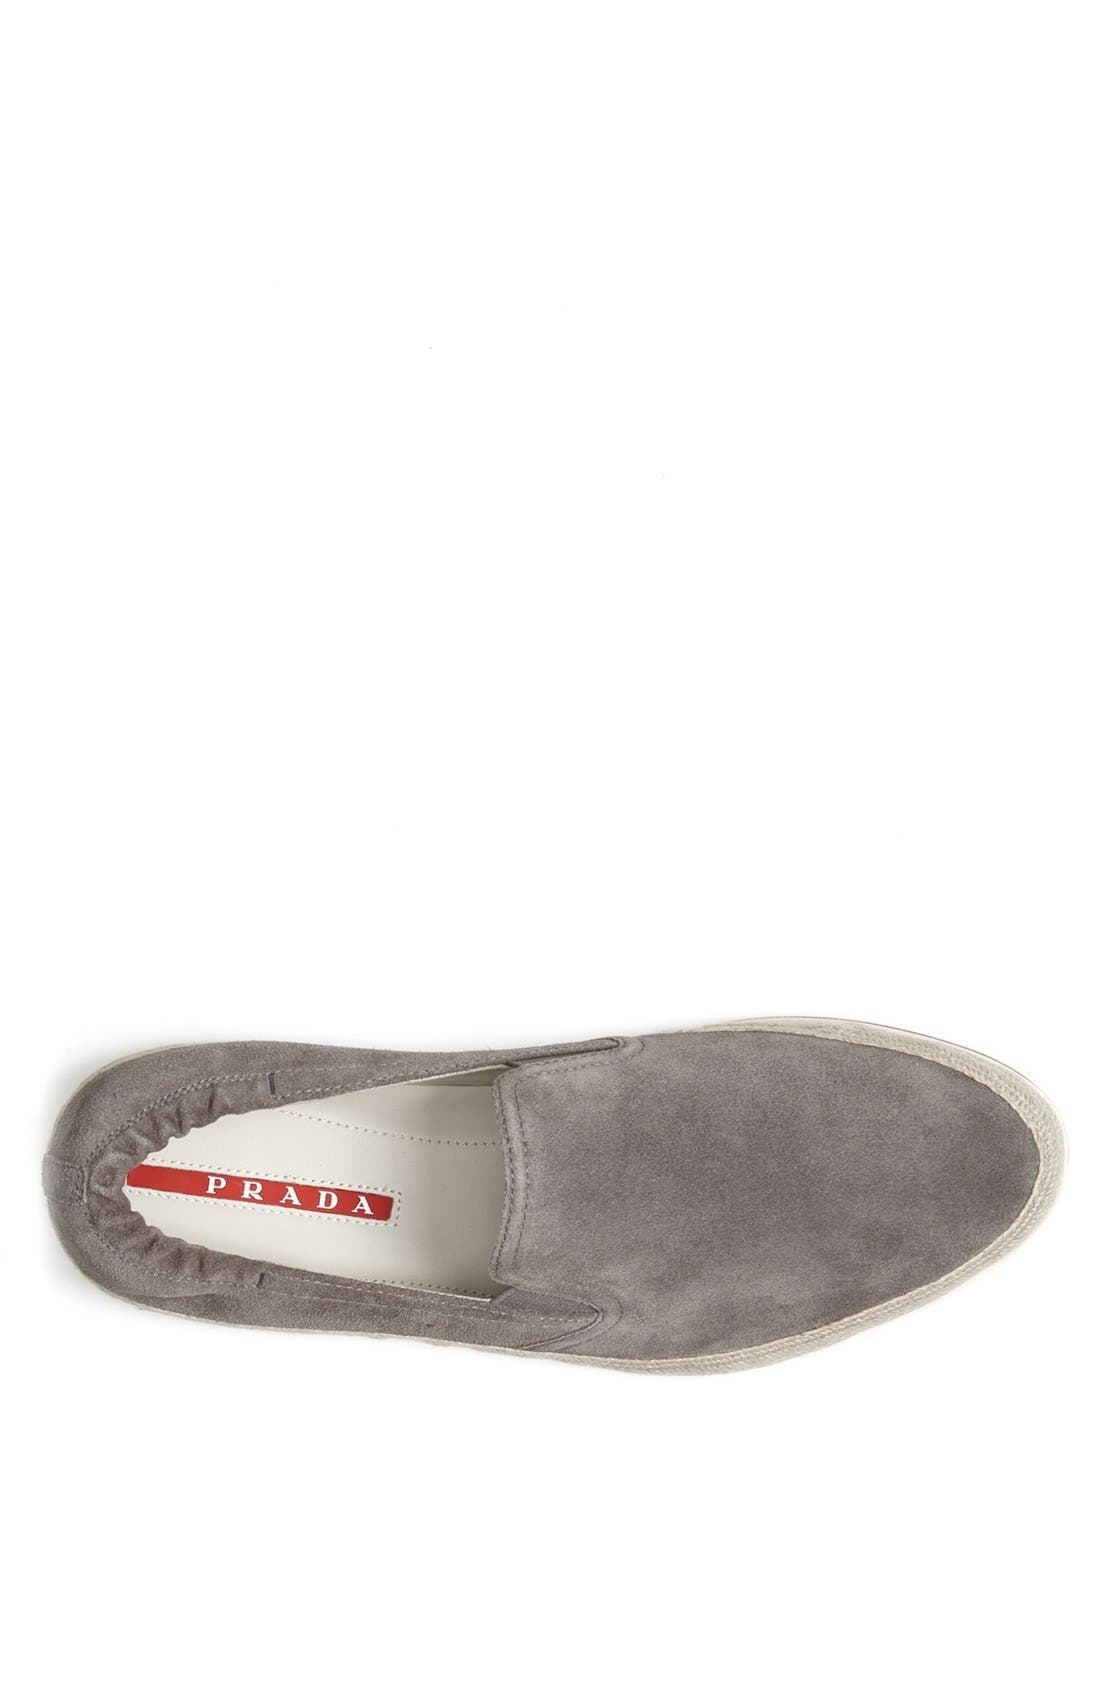 Espadrille Sneaker,                             Alternate thumbnail 3, color,                             033